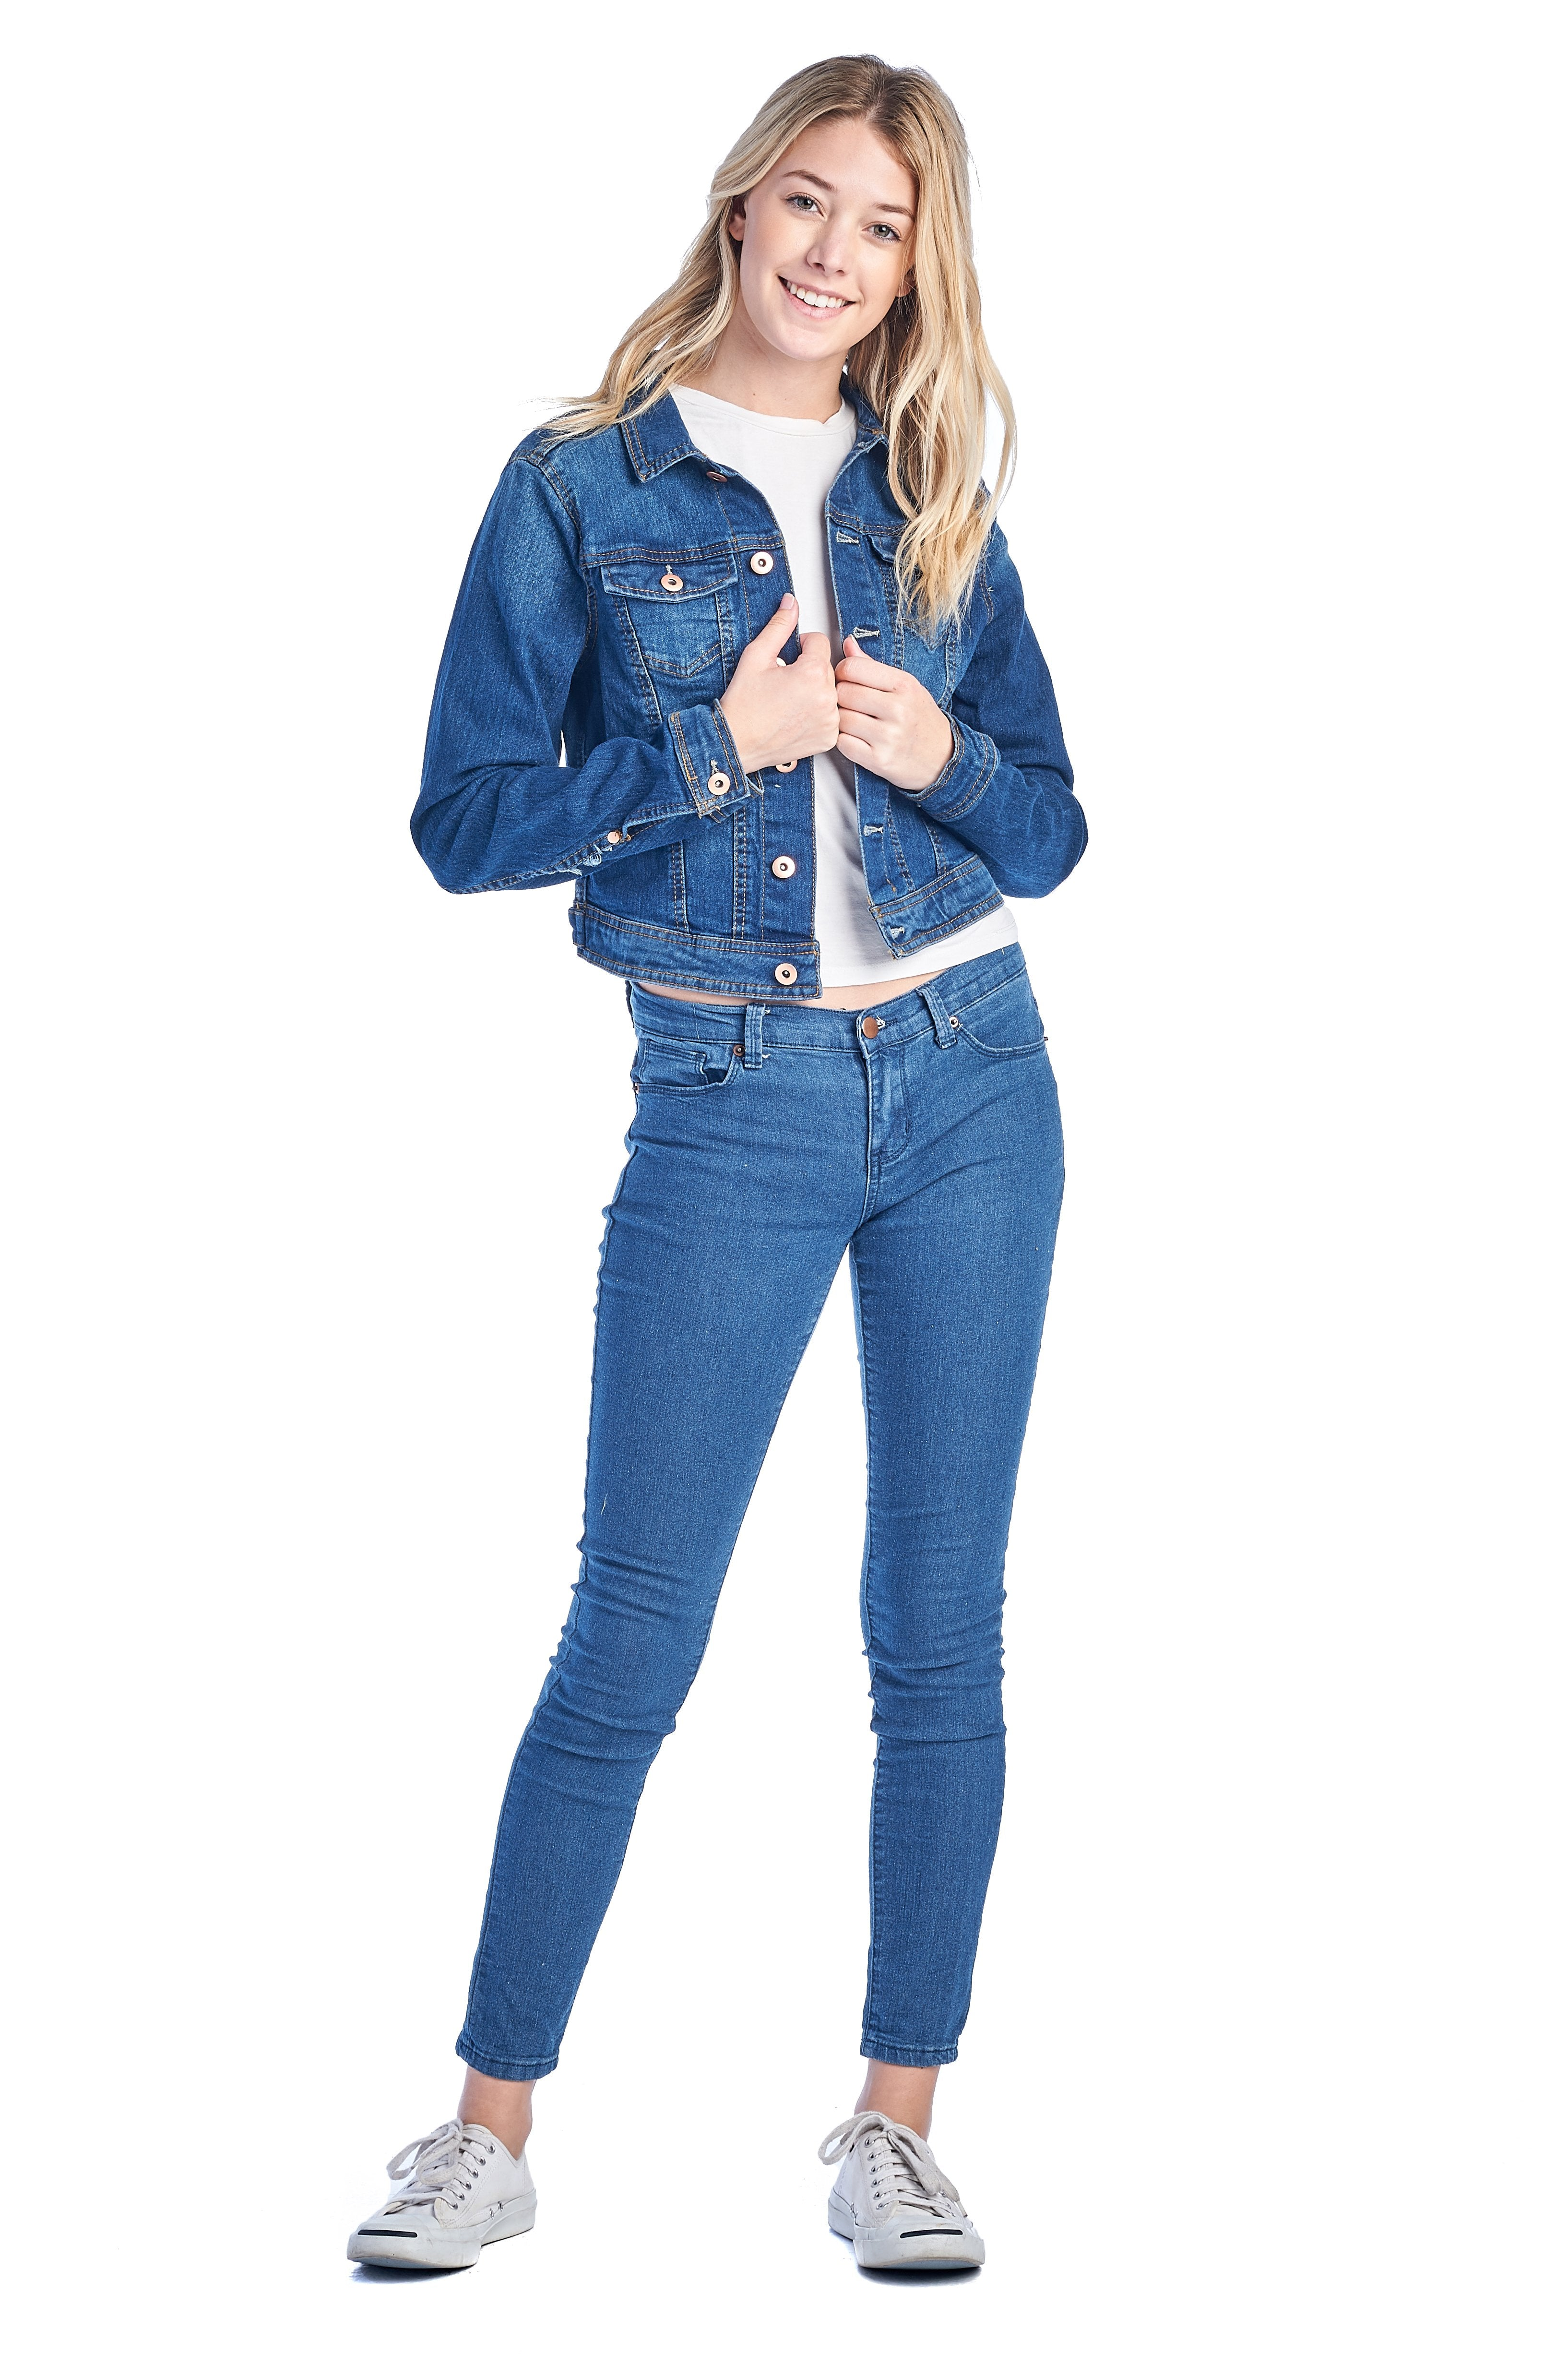 Women's Long Sleeve Basic Casual Classic Cotton Button Front Faded Wash Denim Jean Jacket